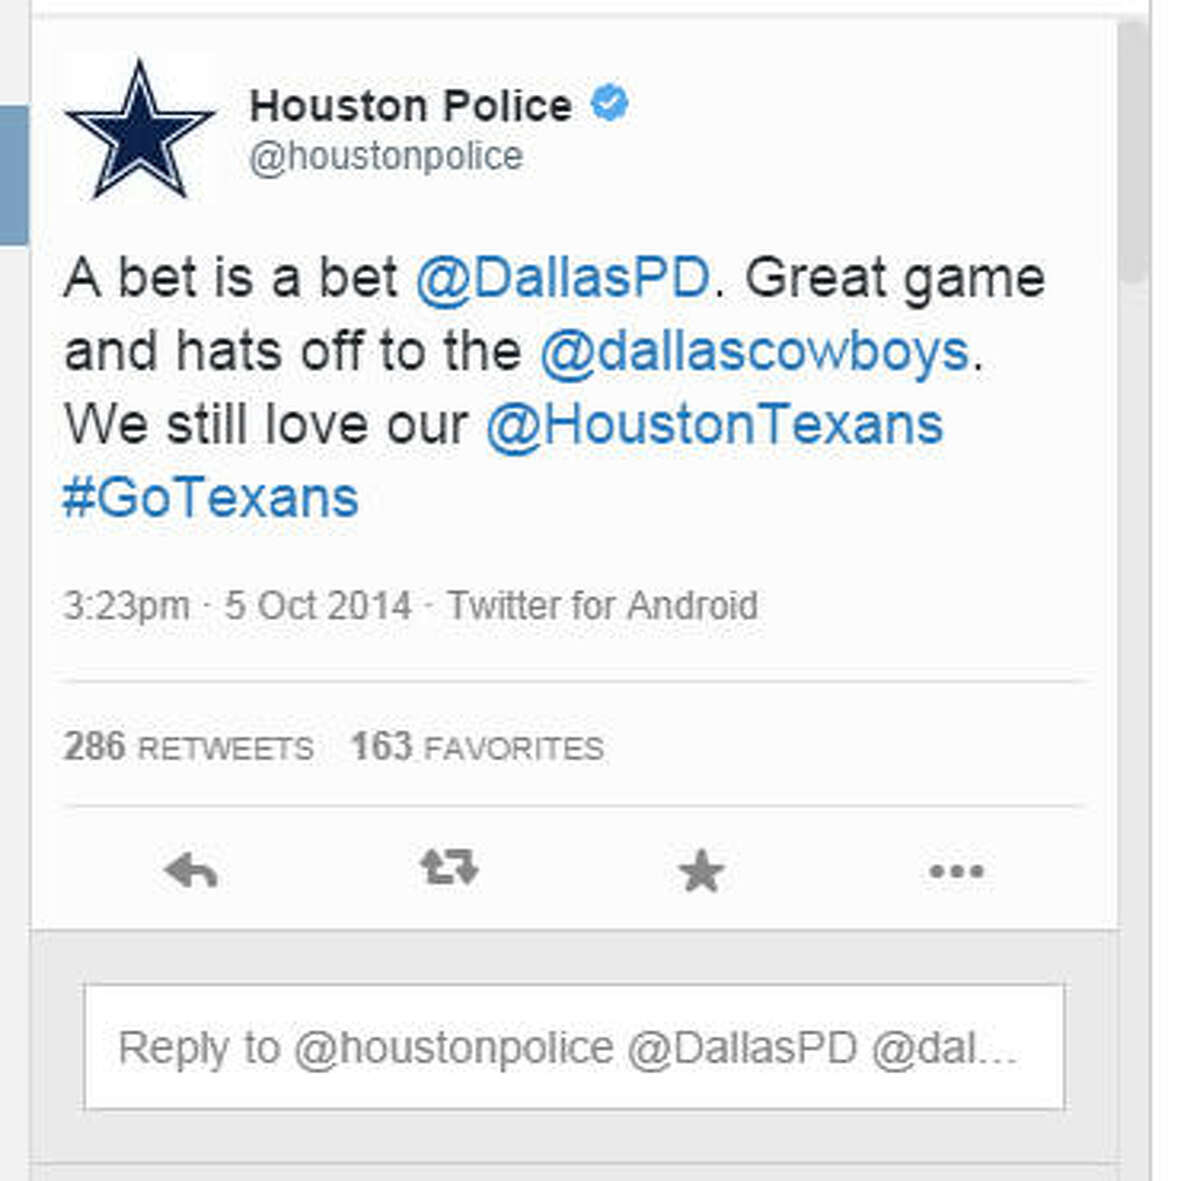 HPD congratulated the Dallas Police Department on the Cowboys' victory over the Texans, Oct. 5, 2014, at Arlington's AT&T Stadium. (Screen shot)Photos: See how the Twitter bet came to be with some PD-vs-PD Twitter trash talking ...